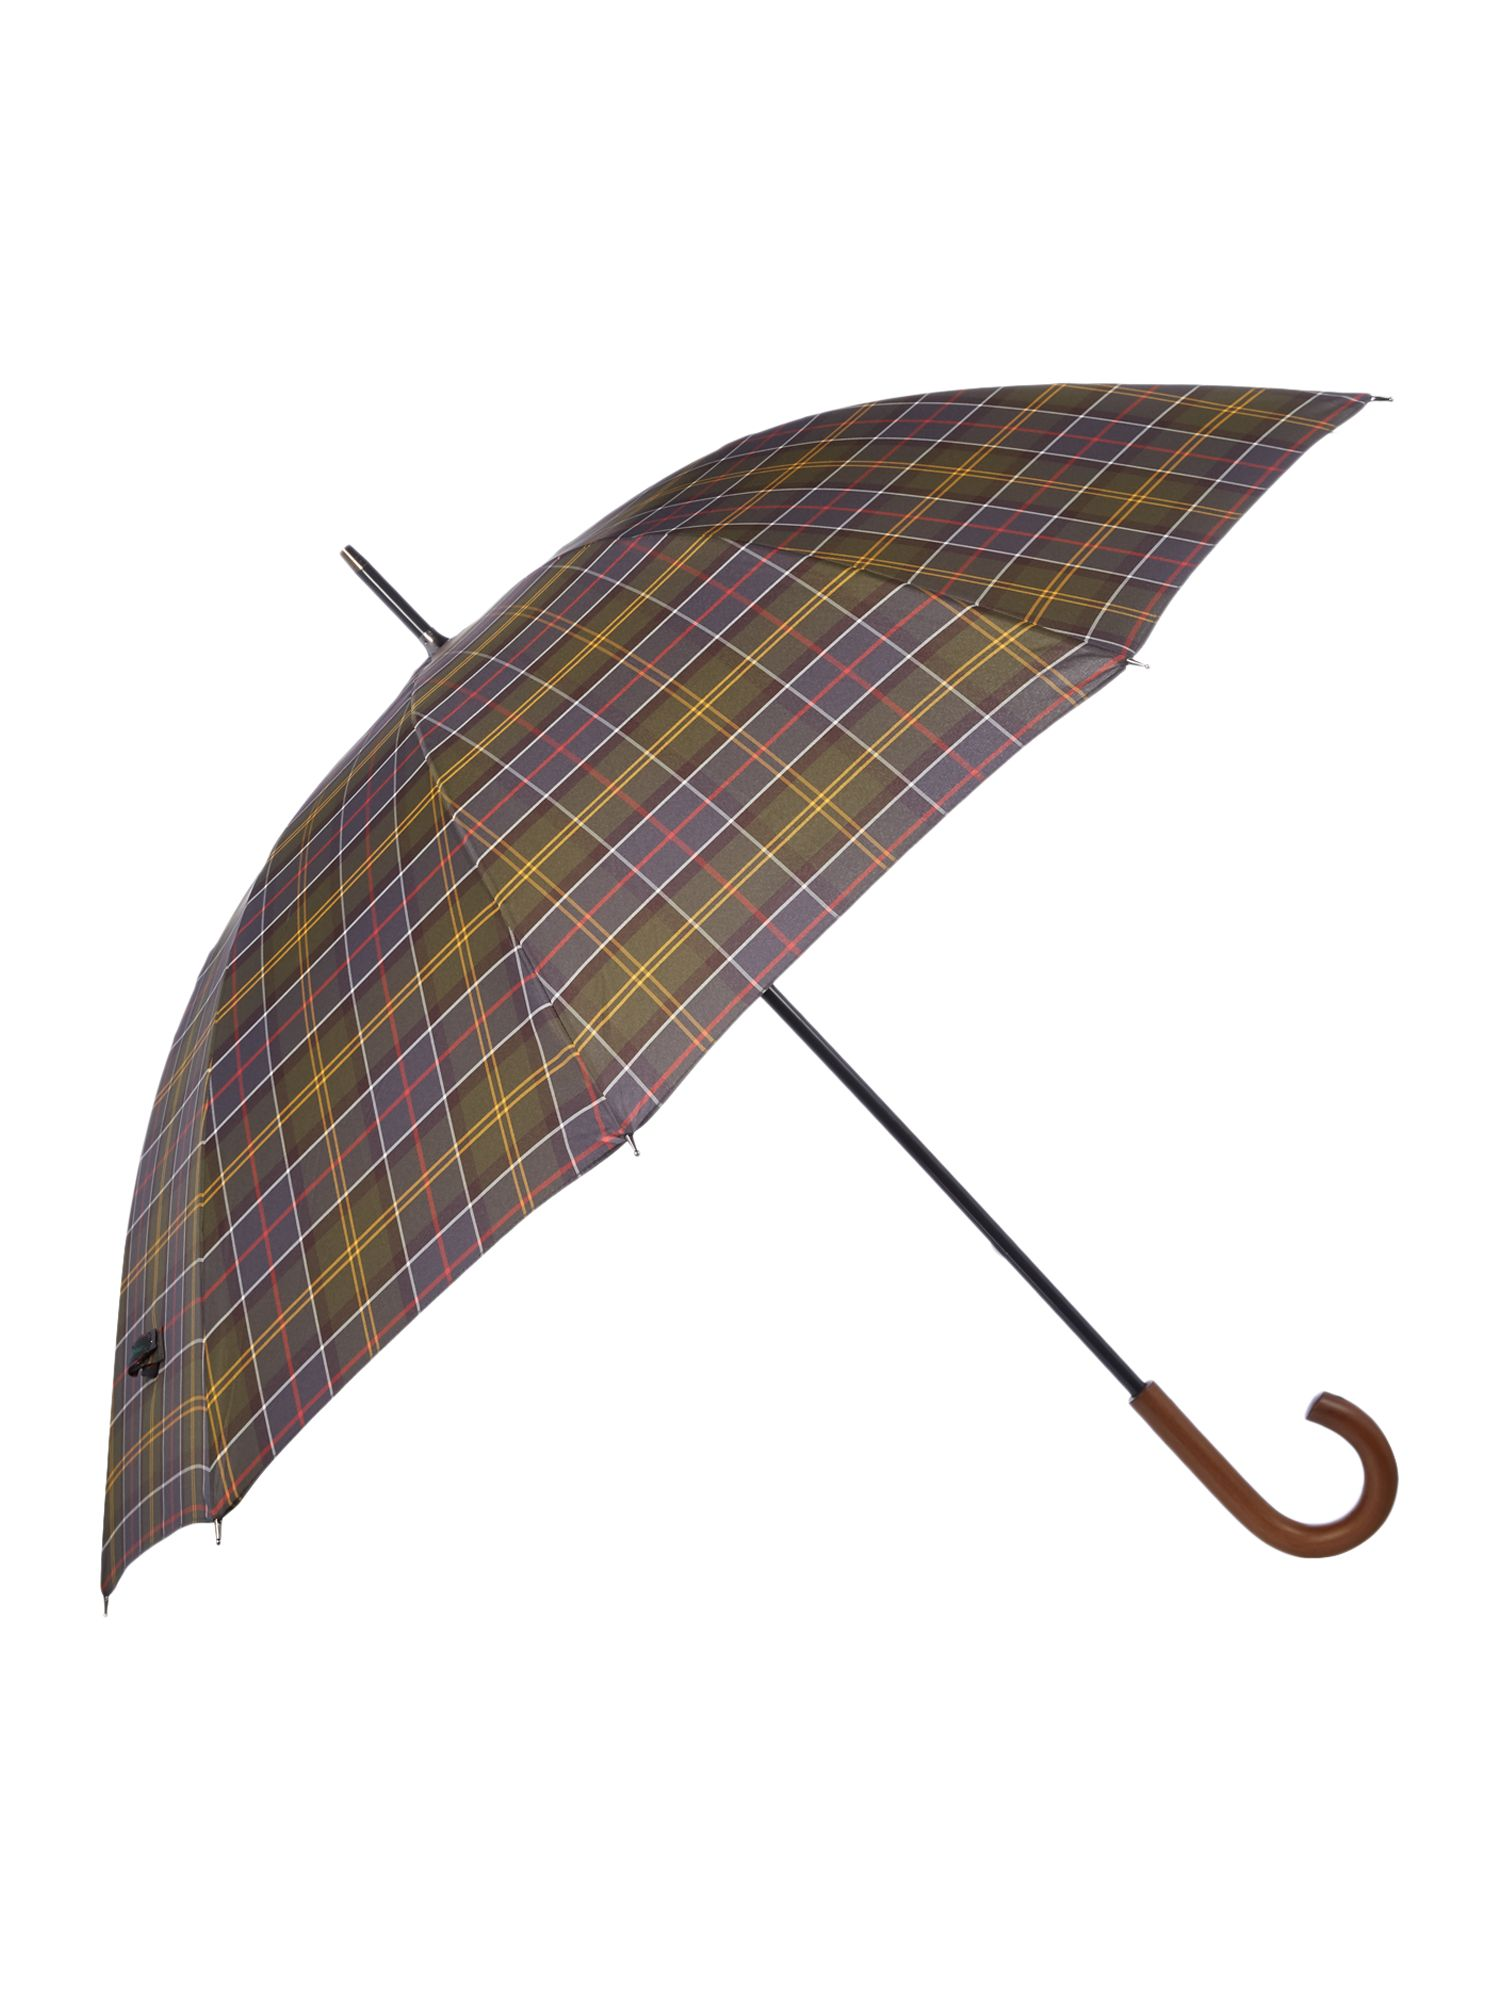 Vintage Style Parasols and Umbrellas Barbour Tartan golf umbrella £40.00 AT vintagedancer.com